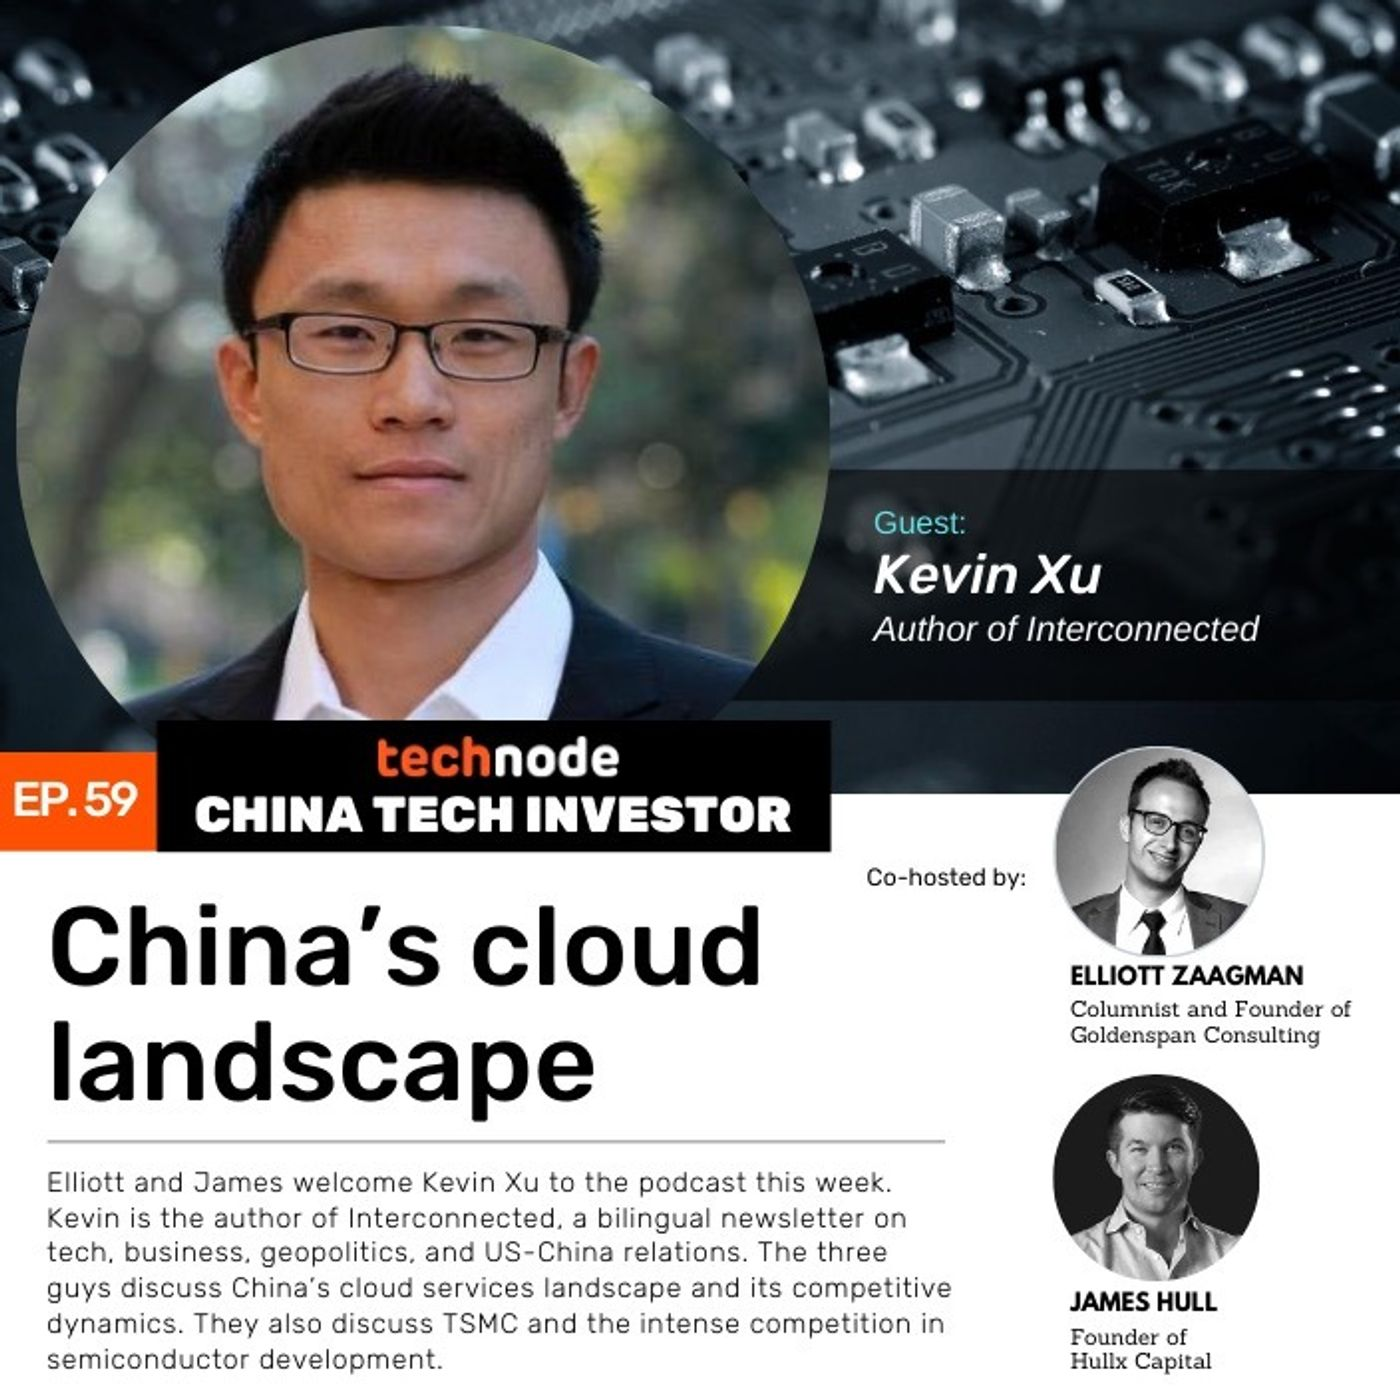 59: China's cloud landscape, with Kevin Xu